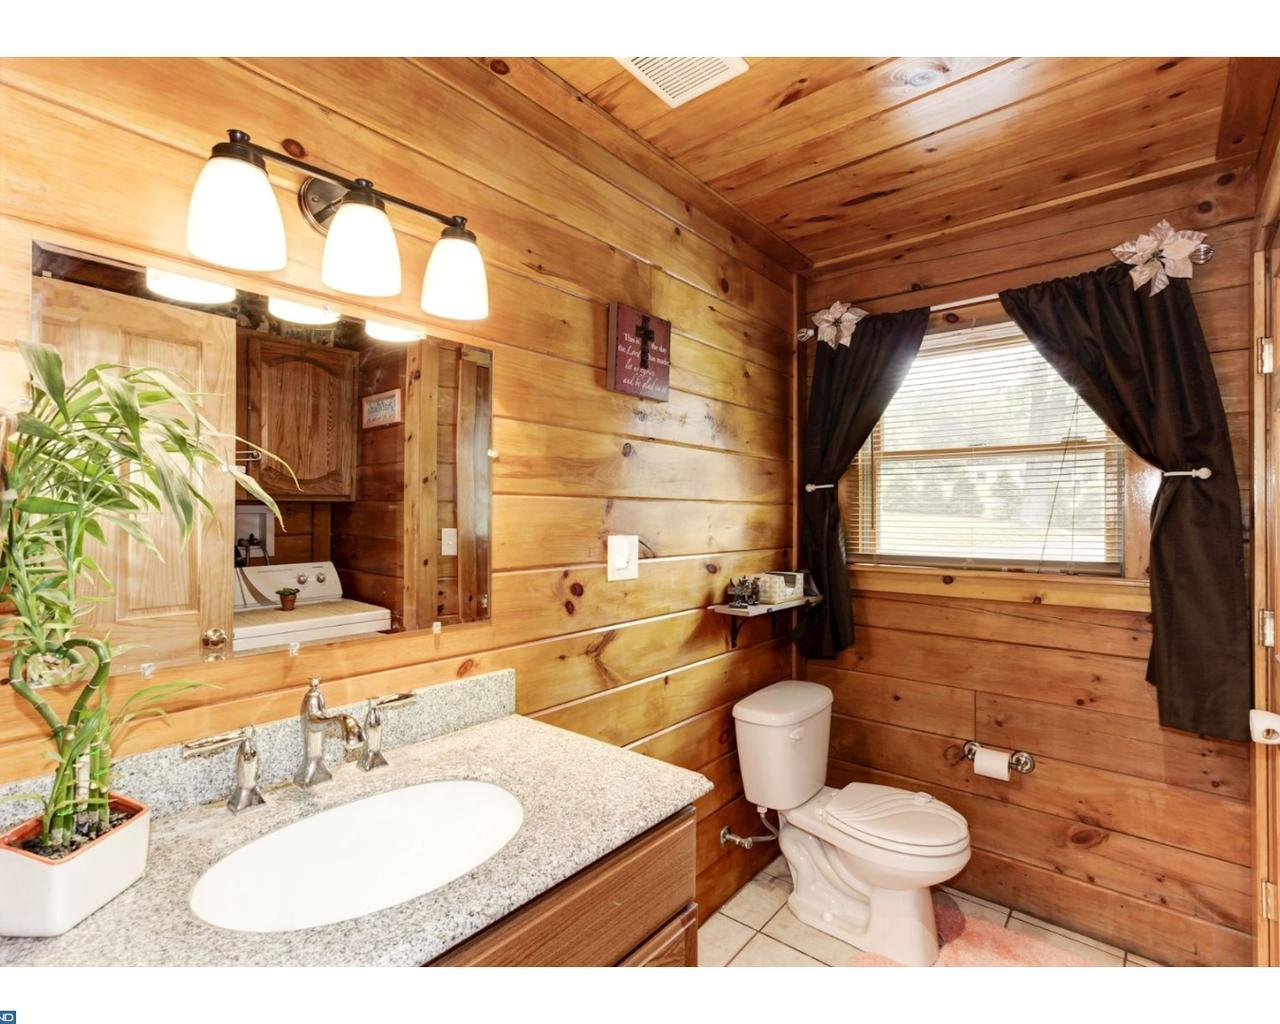 3 Log Cabin Homes Under $450,000